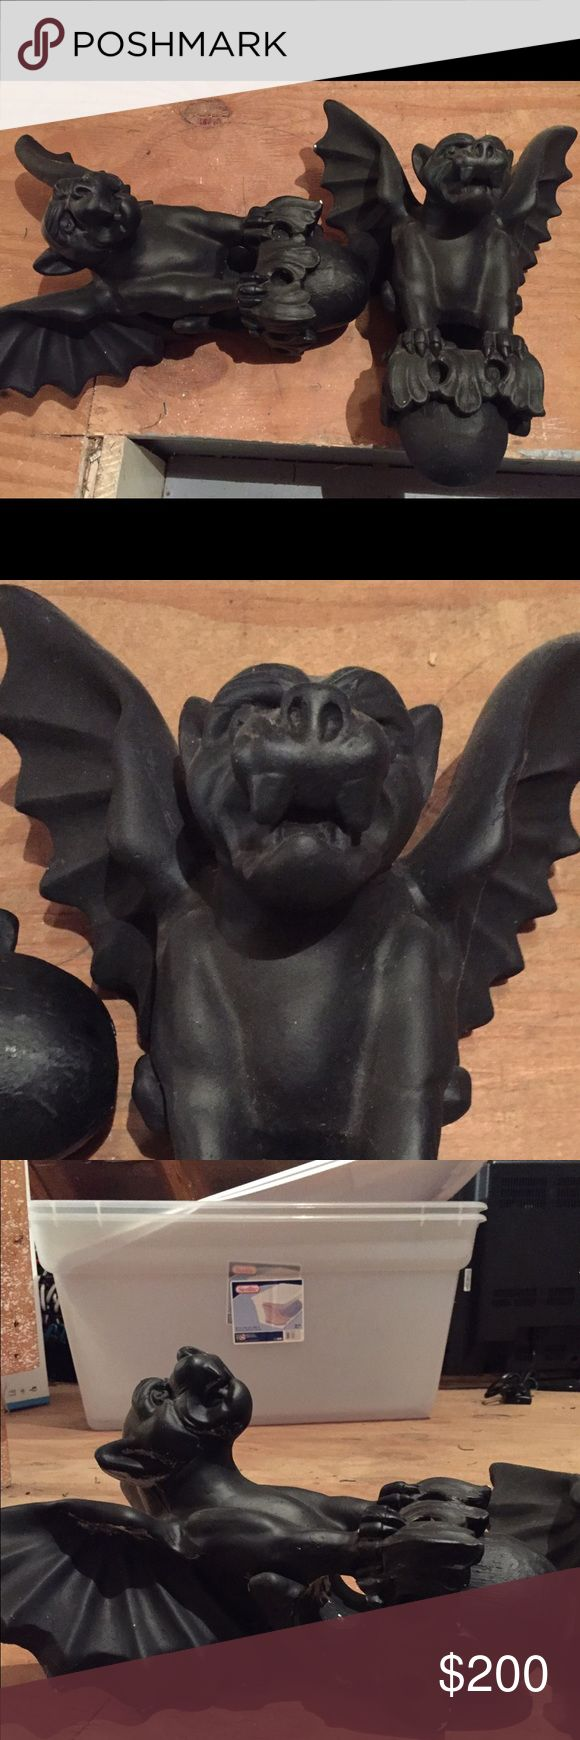 Gargoyle curtain rod holders Black heavy gargoyles designed to be used as curtain rod holders. Purchased years ago at estate sale . They sat in corners of study doorway with curtain rod and velvet drape . They are old vintage and heavy . Approx 12 inches tall and 10 inches wide at wings. They have a weight like concrete and appear to be ceramic unknown Other